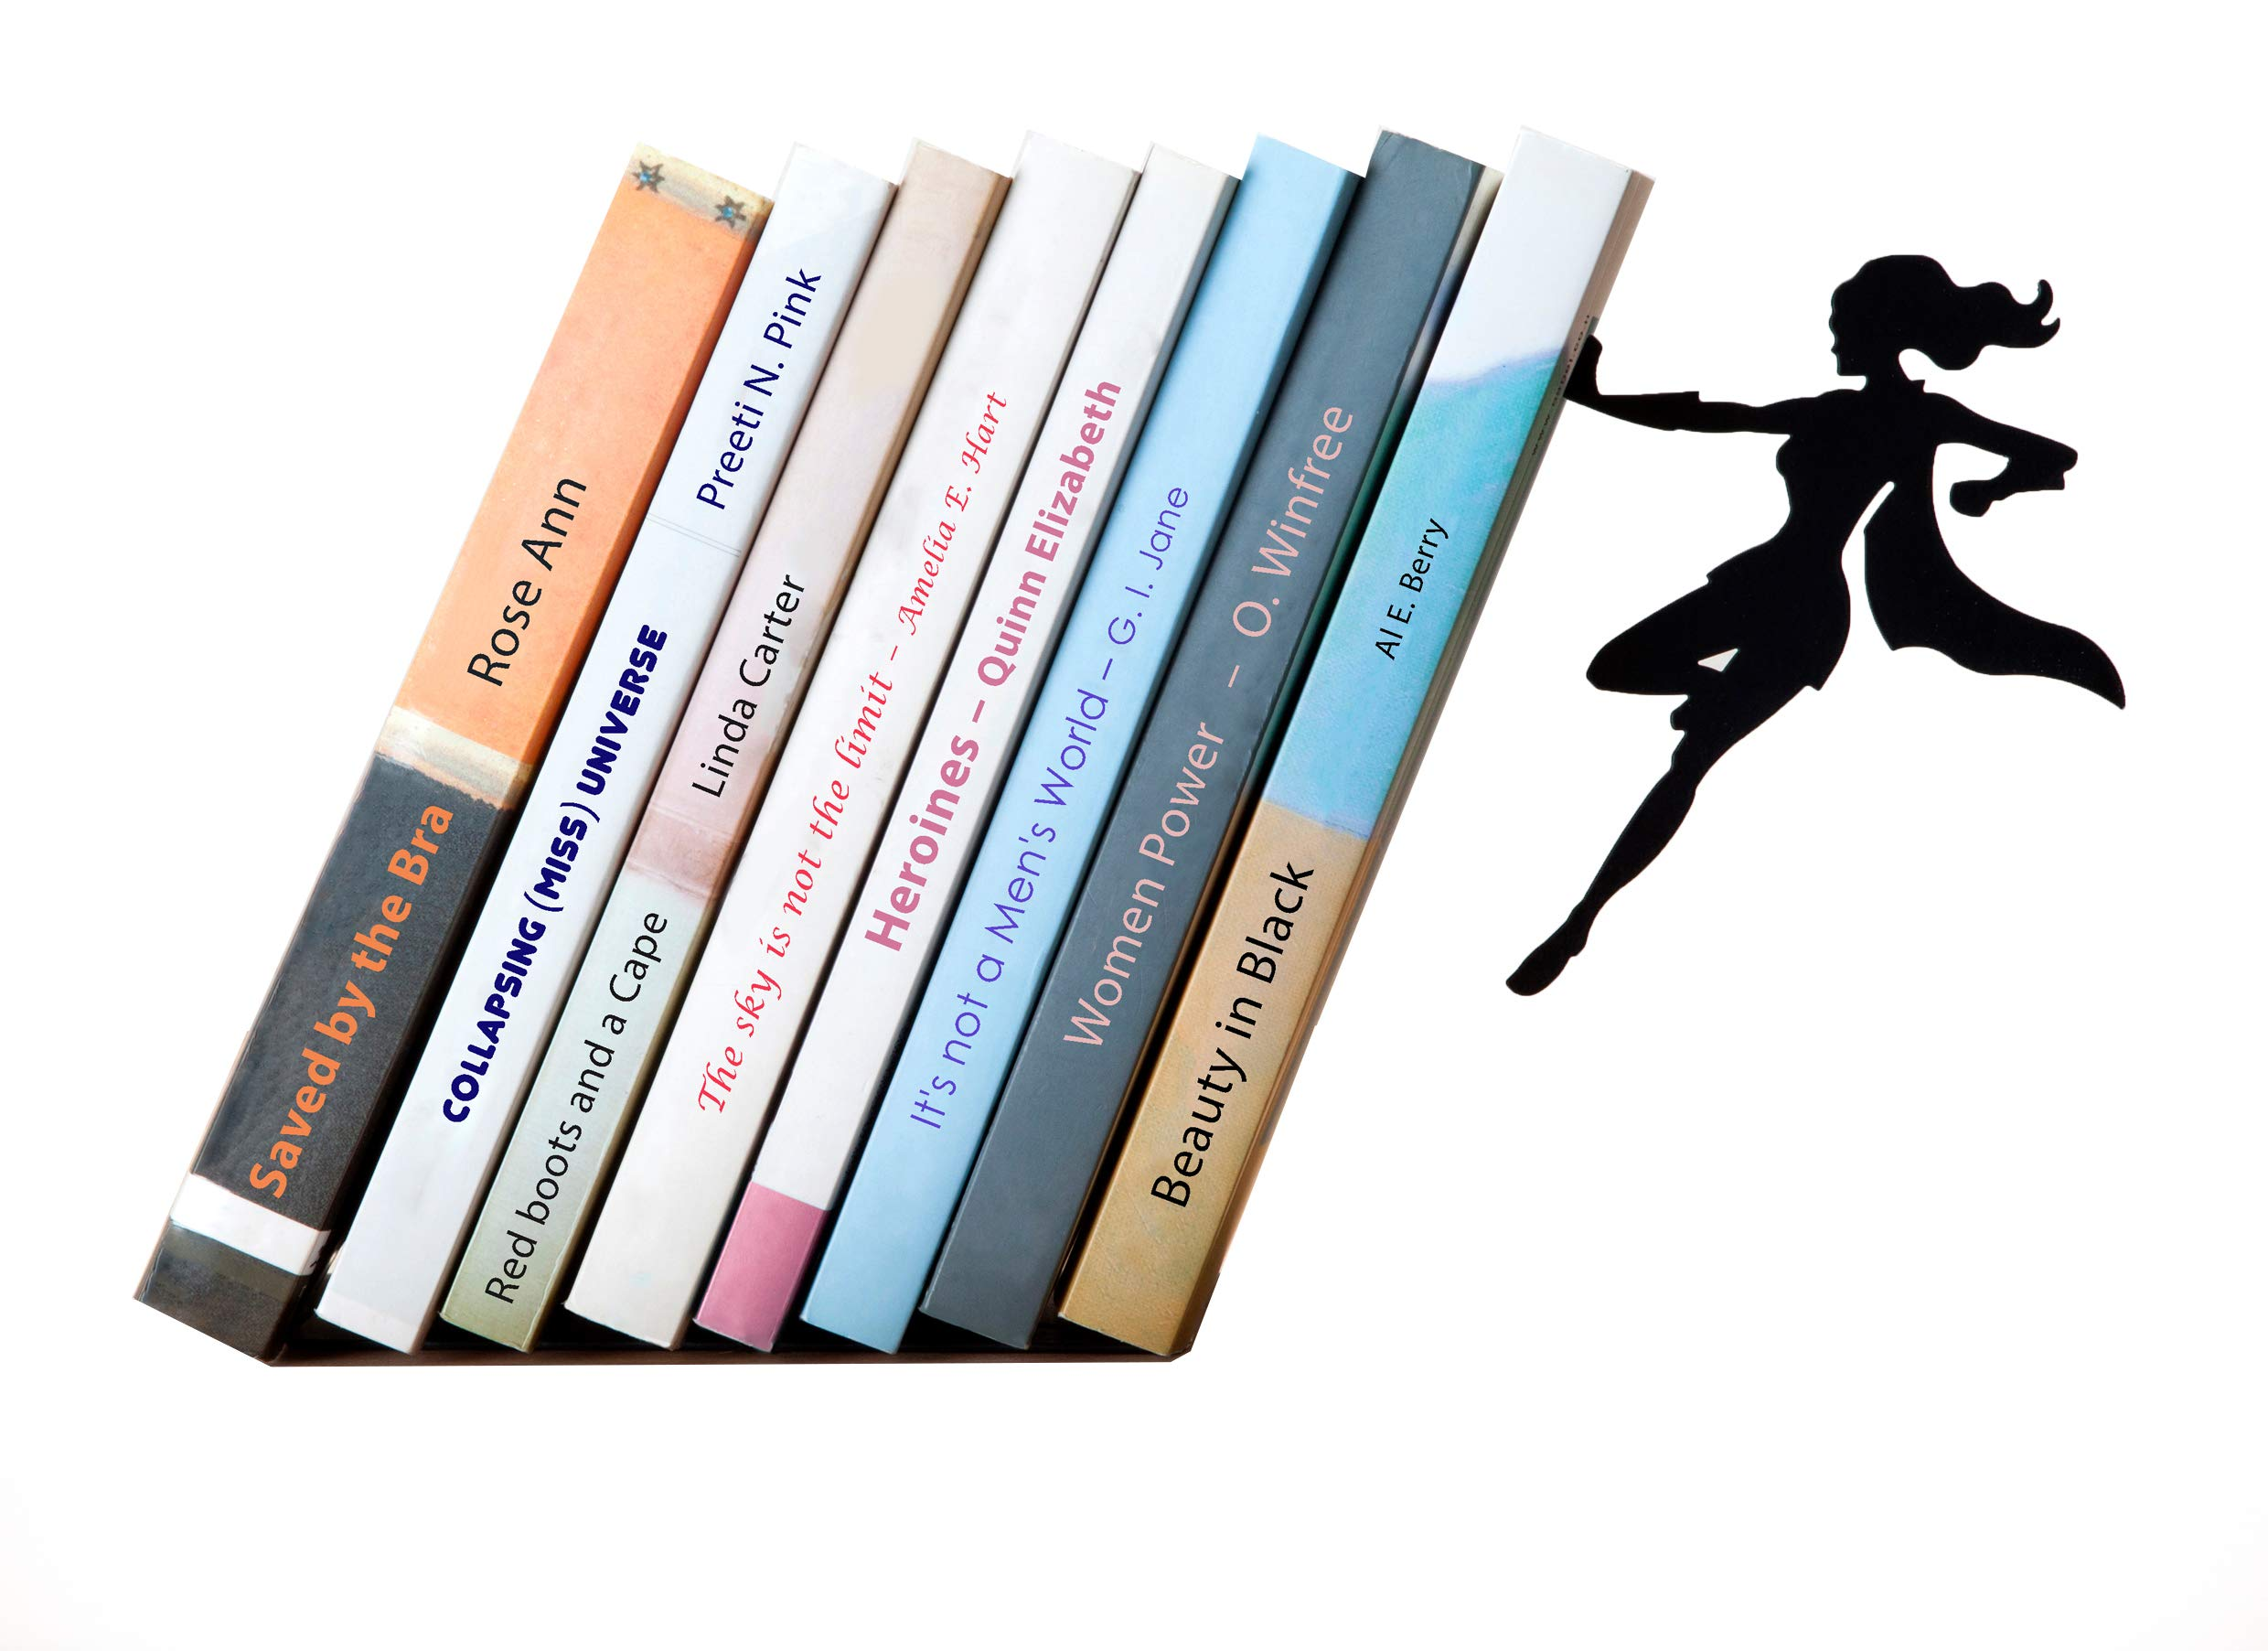 Artori Design Book Ends | Metal Female Superwoman Bookend | Unique Book Stoppers | Gifts for Girls | Present for Book Lovers | Cool Book Holder | Book End for Mom Supergal by Artori Design